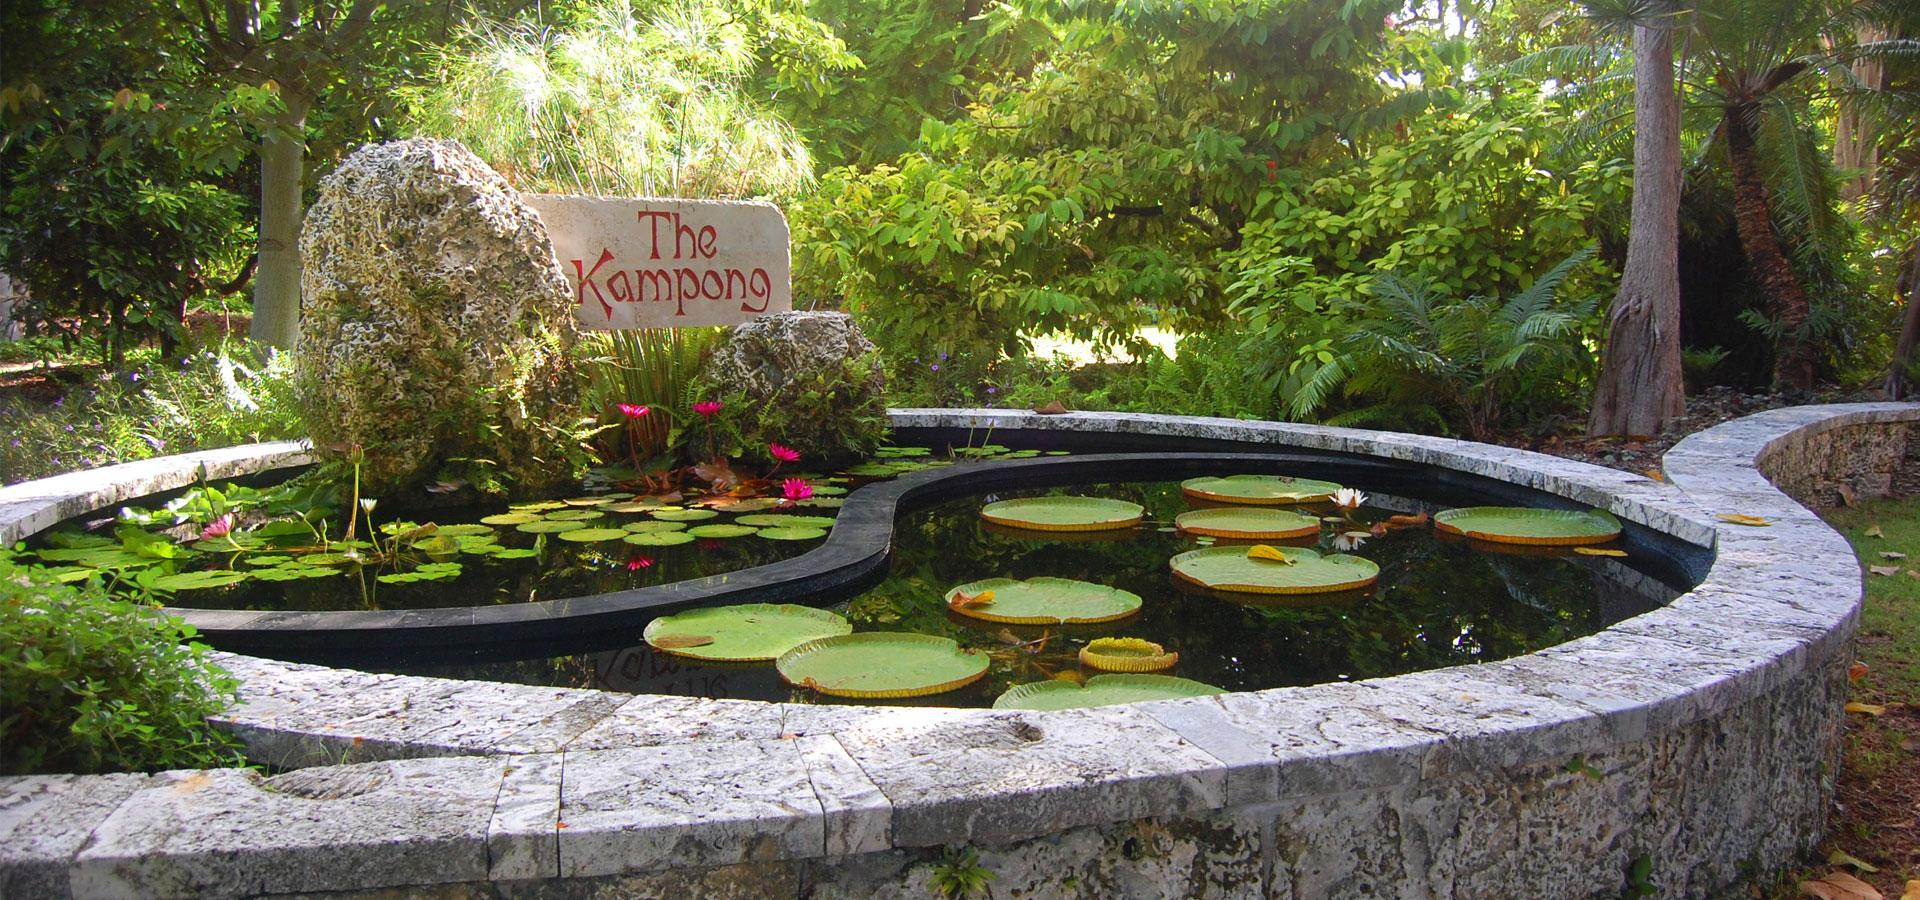 The Kampong. Credit: The National Tropical Botanical Garden